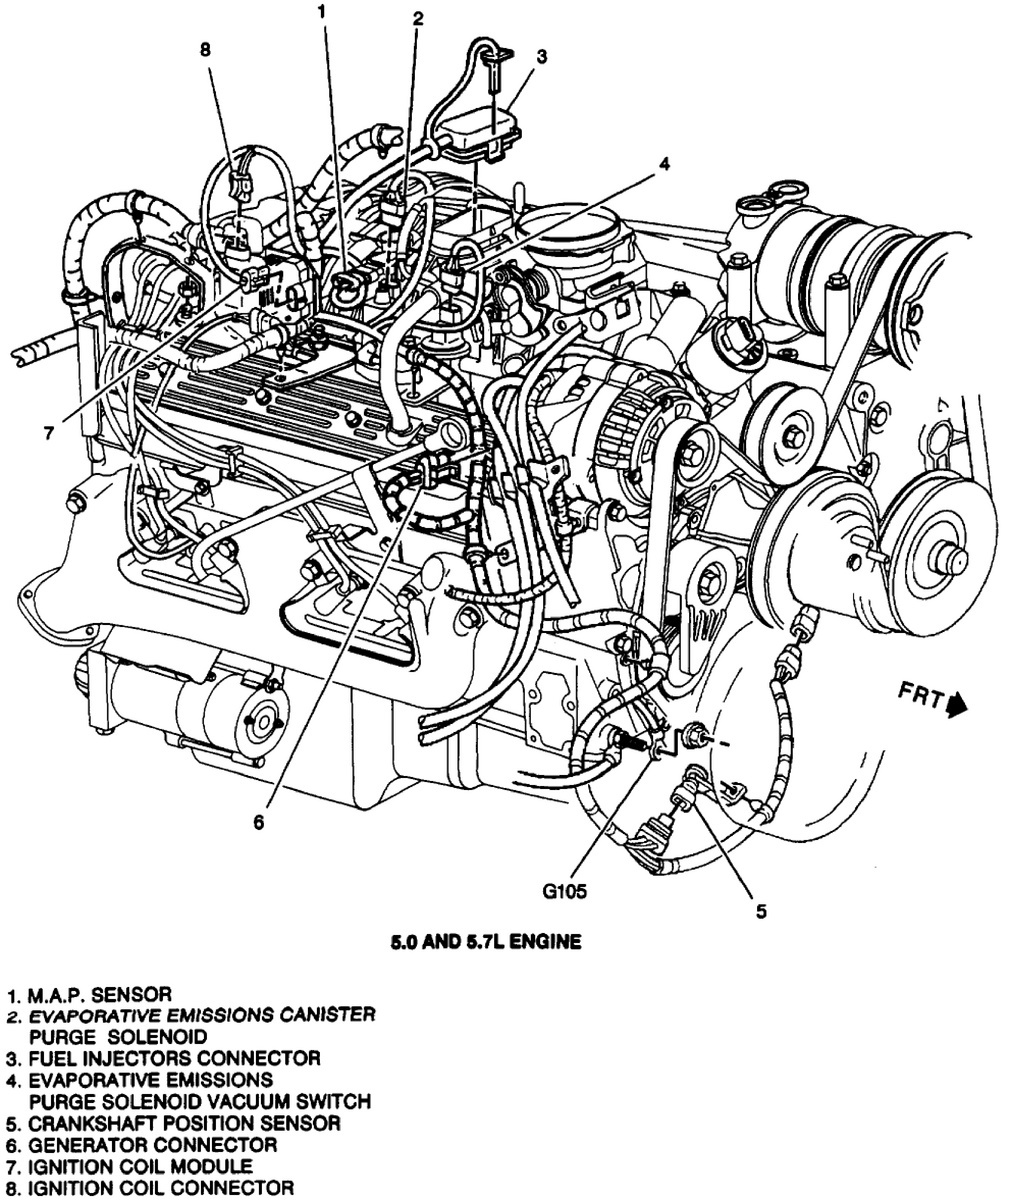 Chevy Tahoe Engine Diagram Wiring Diagram System Link Image Link Image Ediliadesign It